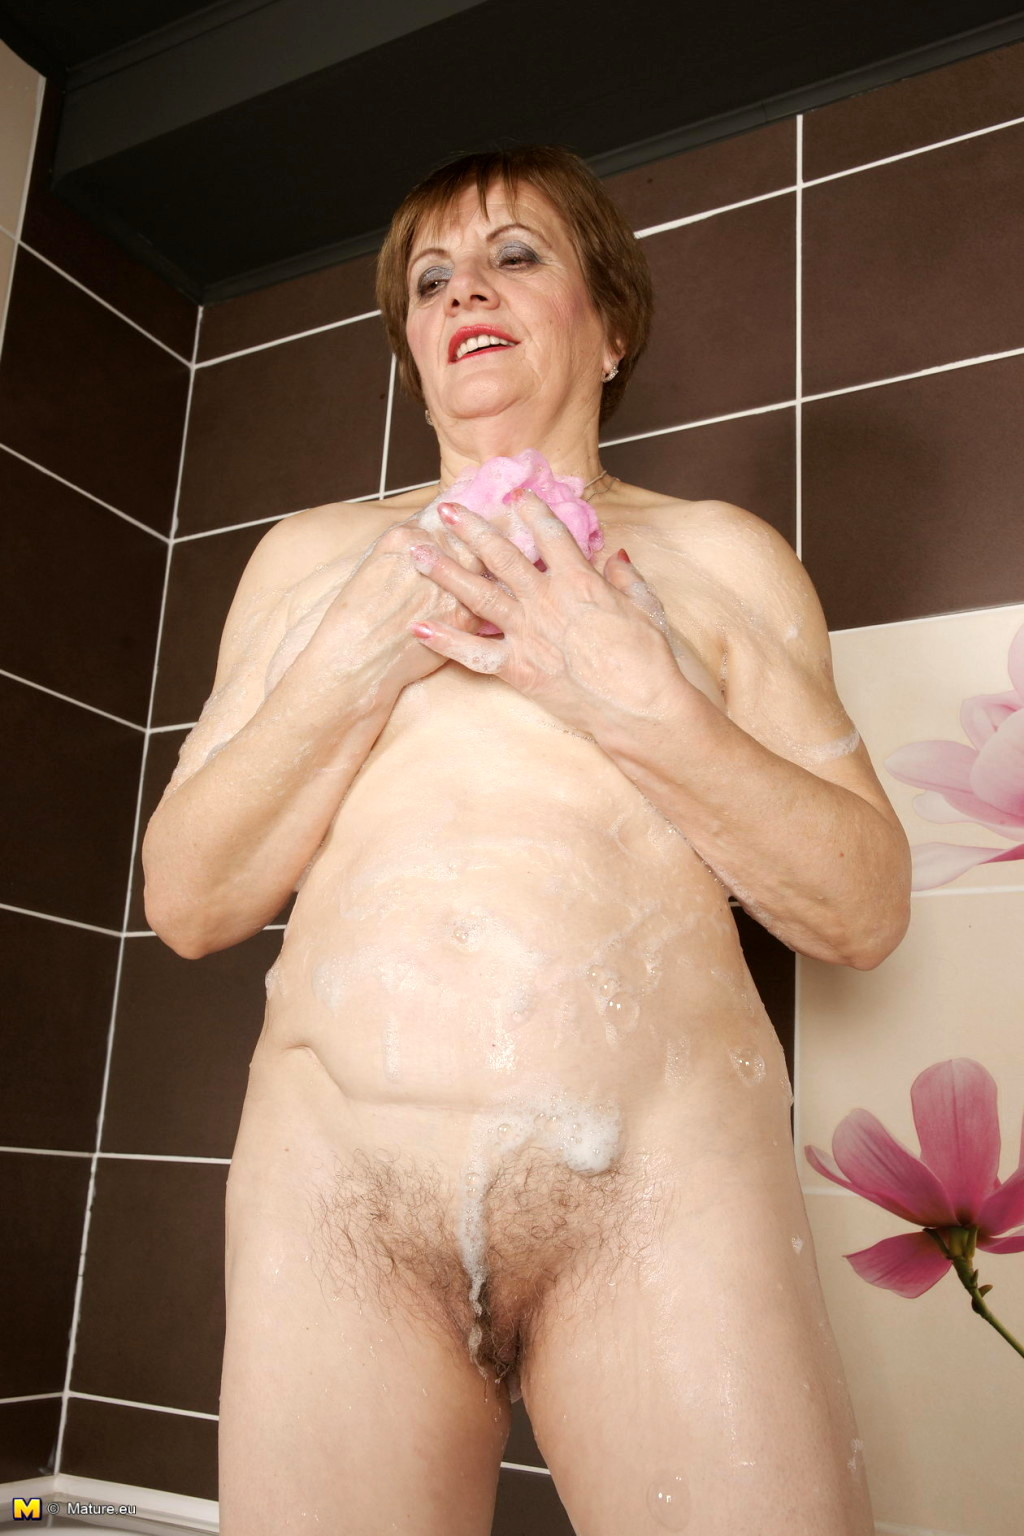 Babe Today Mature Nl Maturenl Model High Level Granny -9712